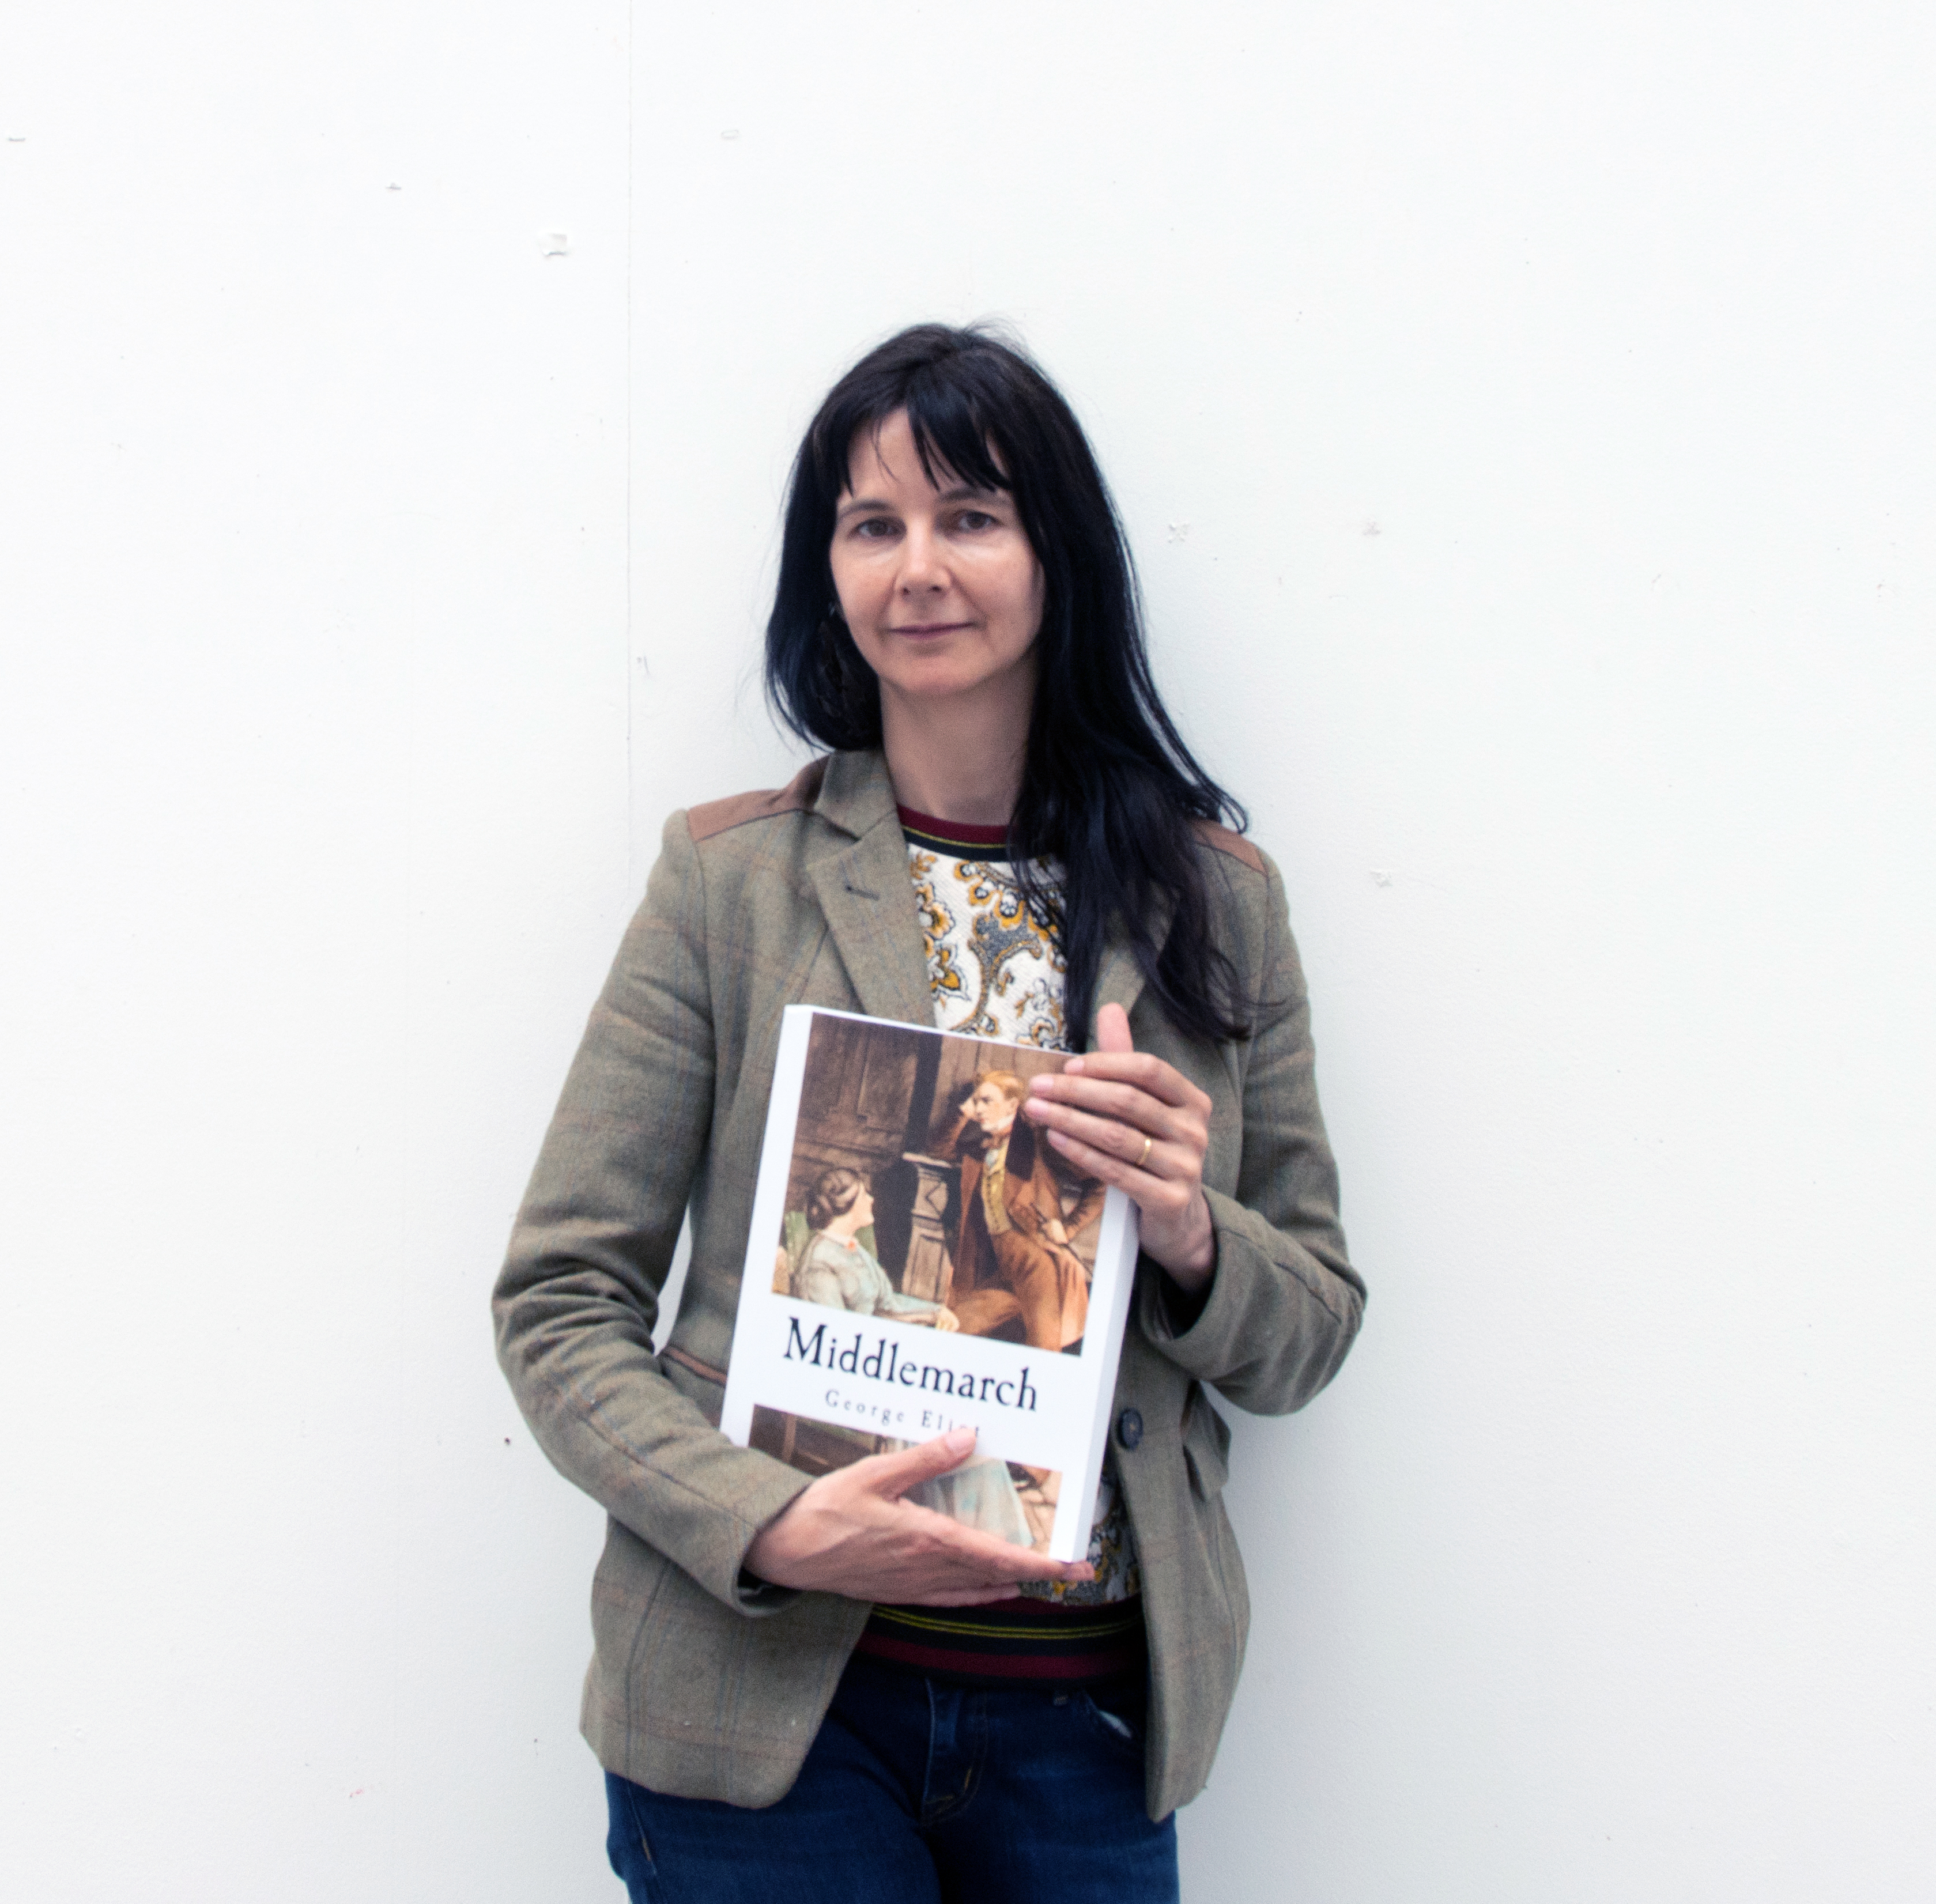 The artist Gillian Wearing stands holding a copy of Middlemarch by George Eliot